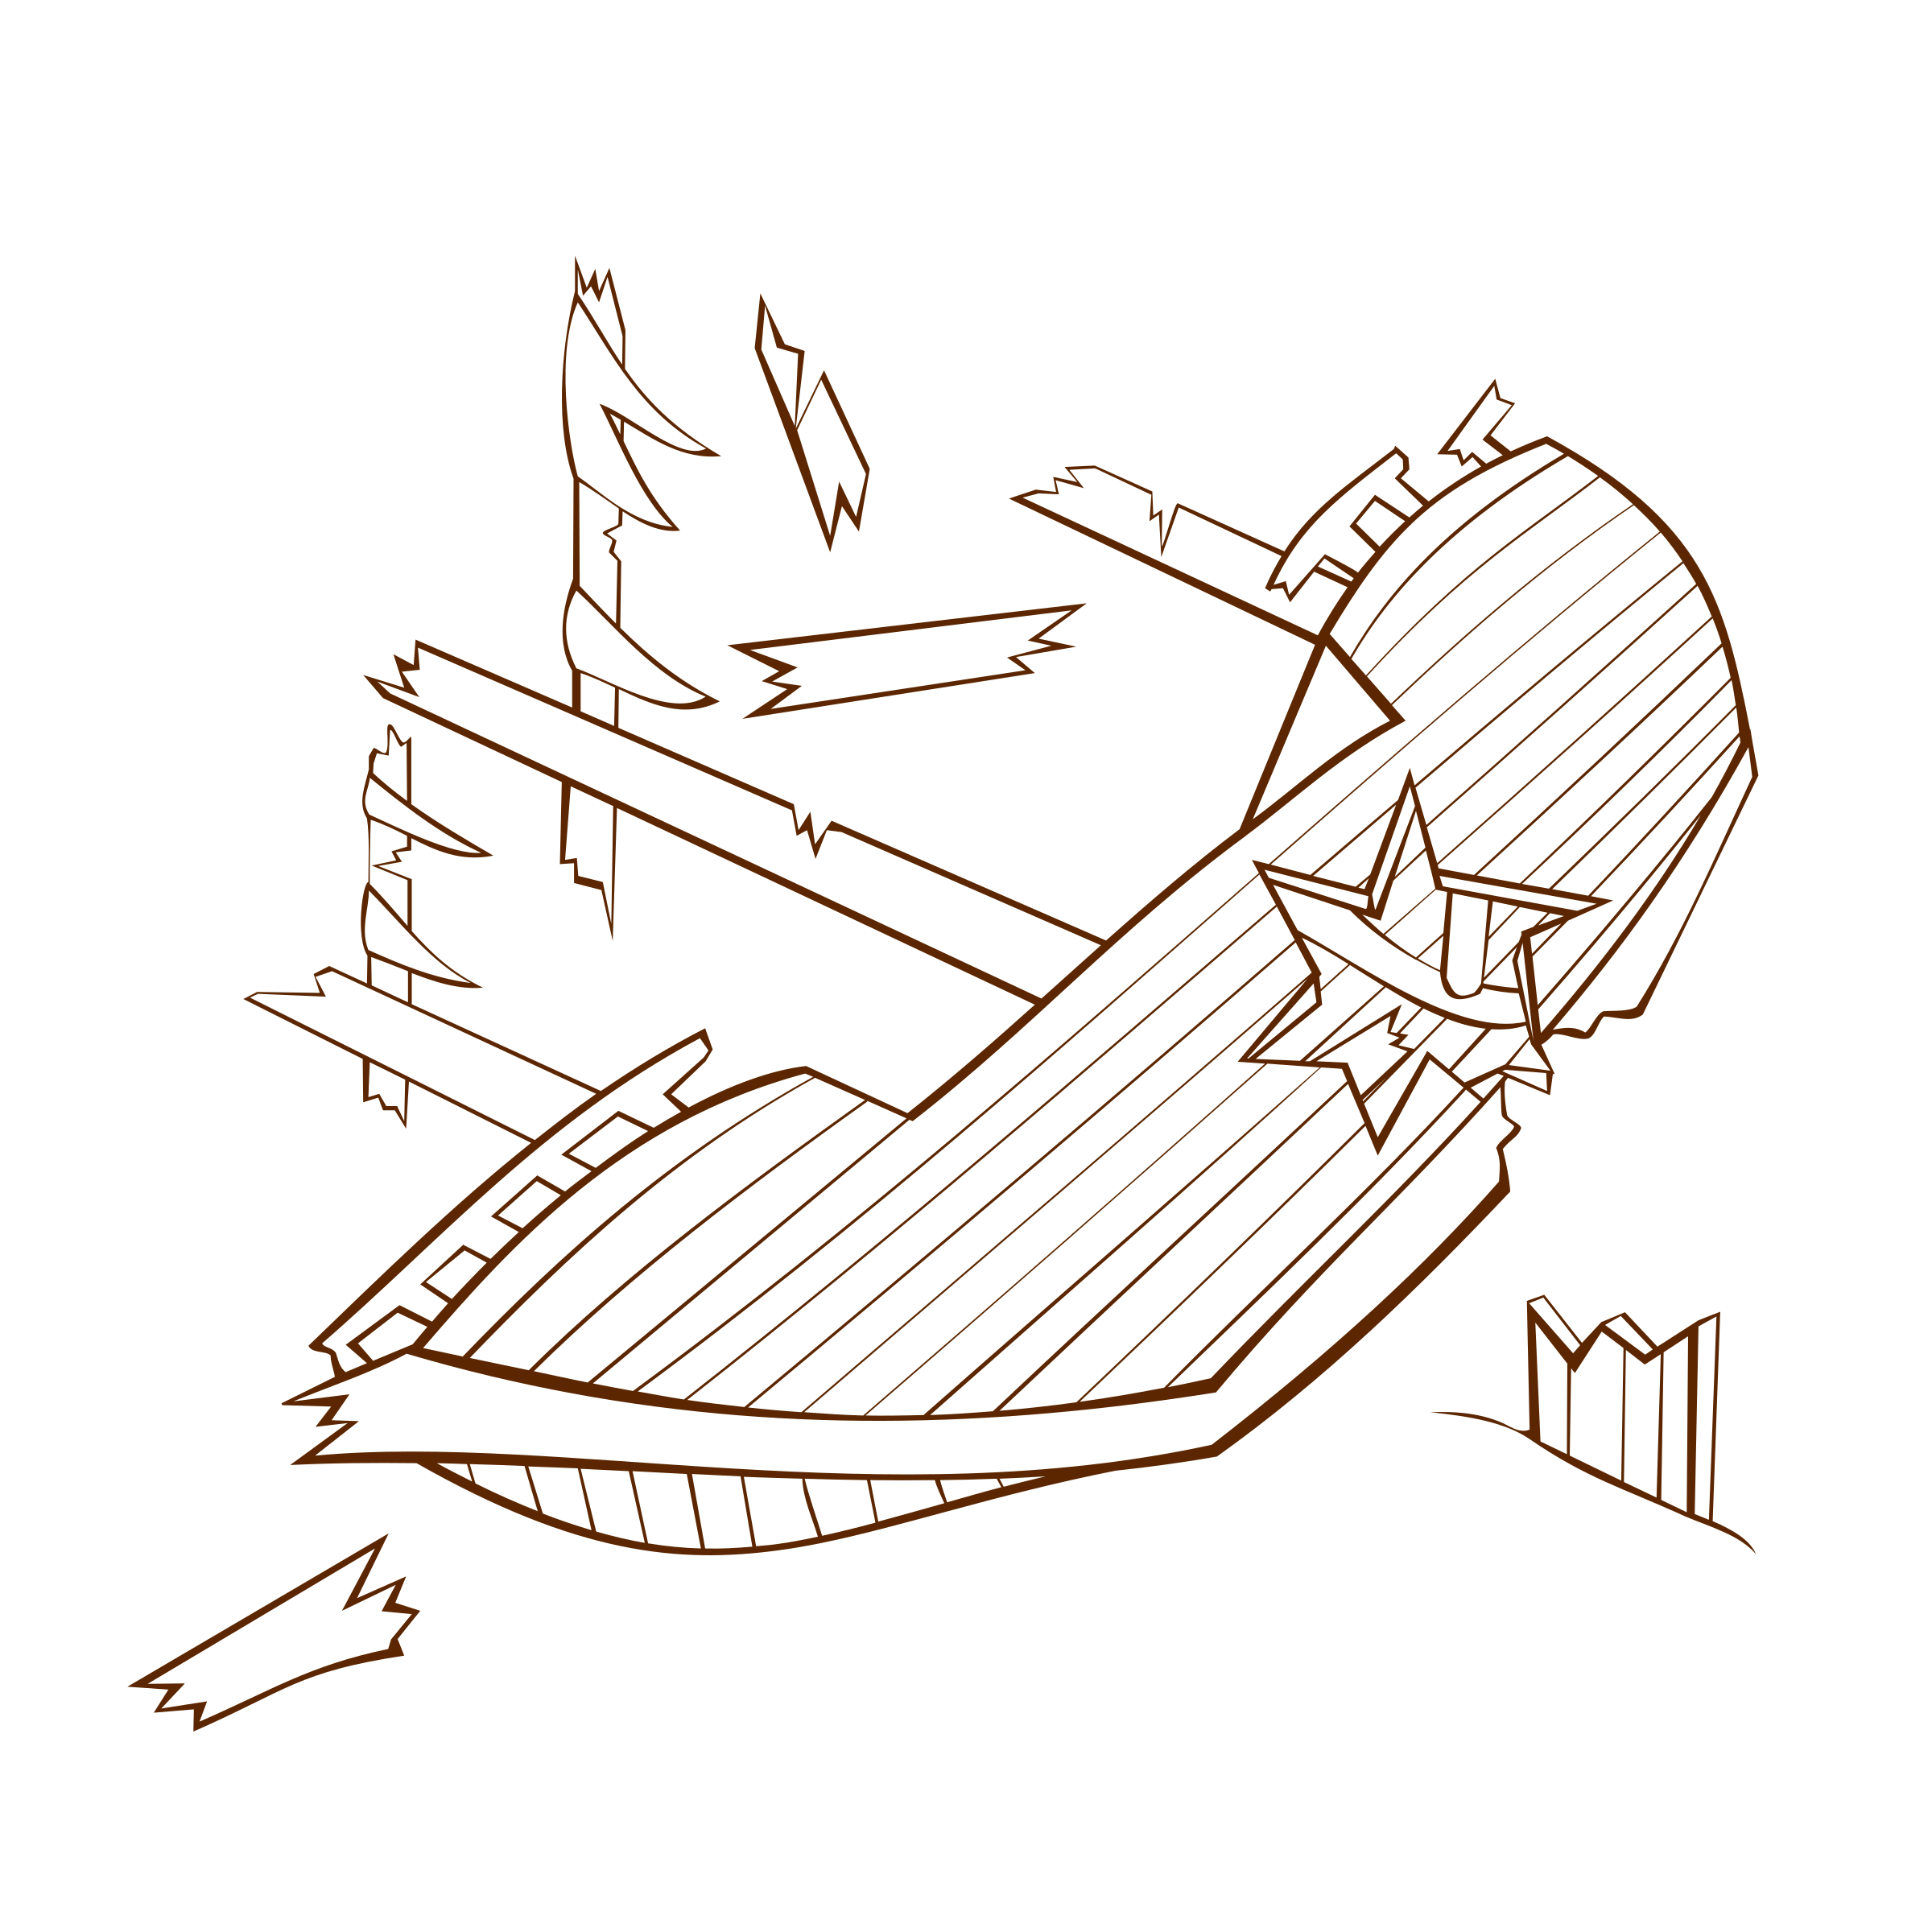 Rpg drawing ink. Free shipwreck icon download